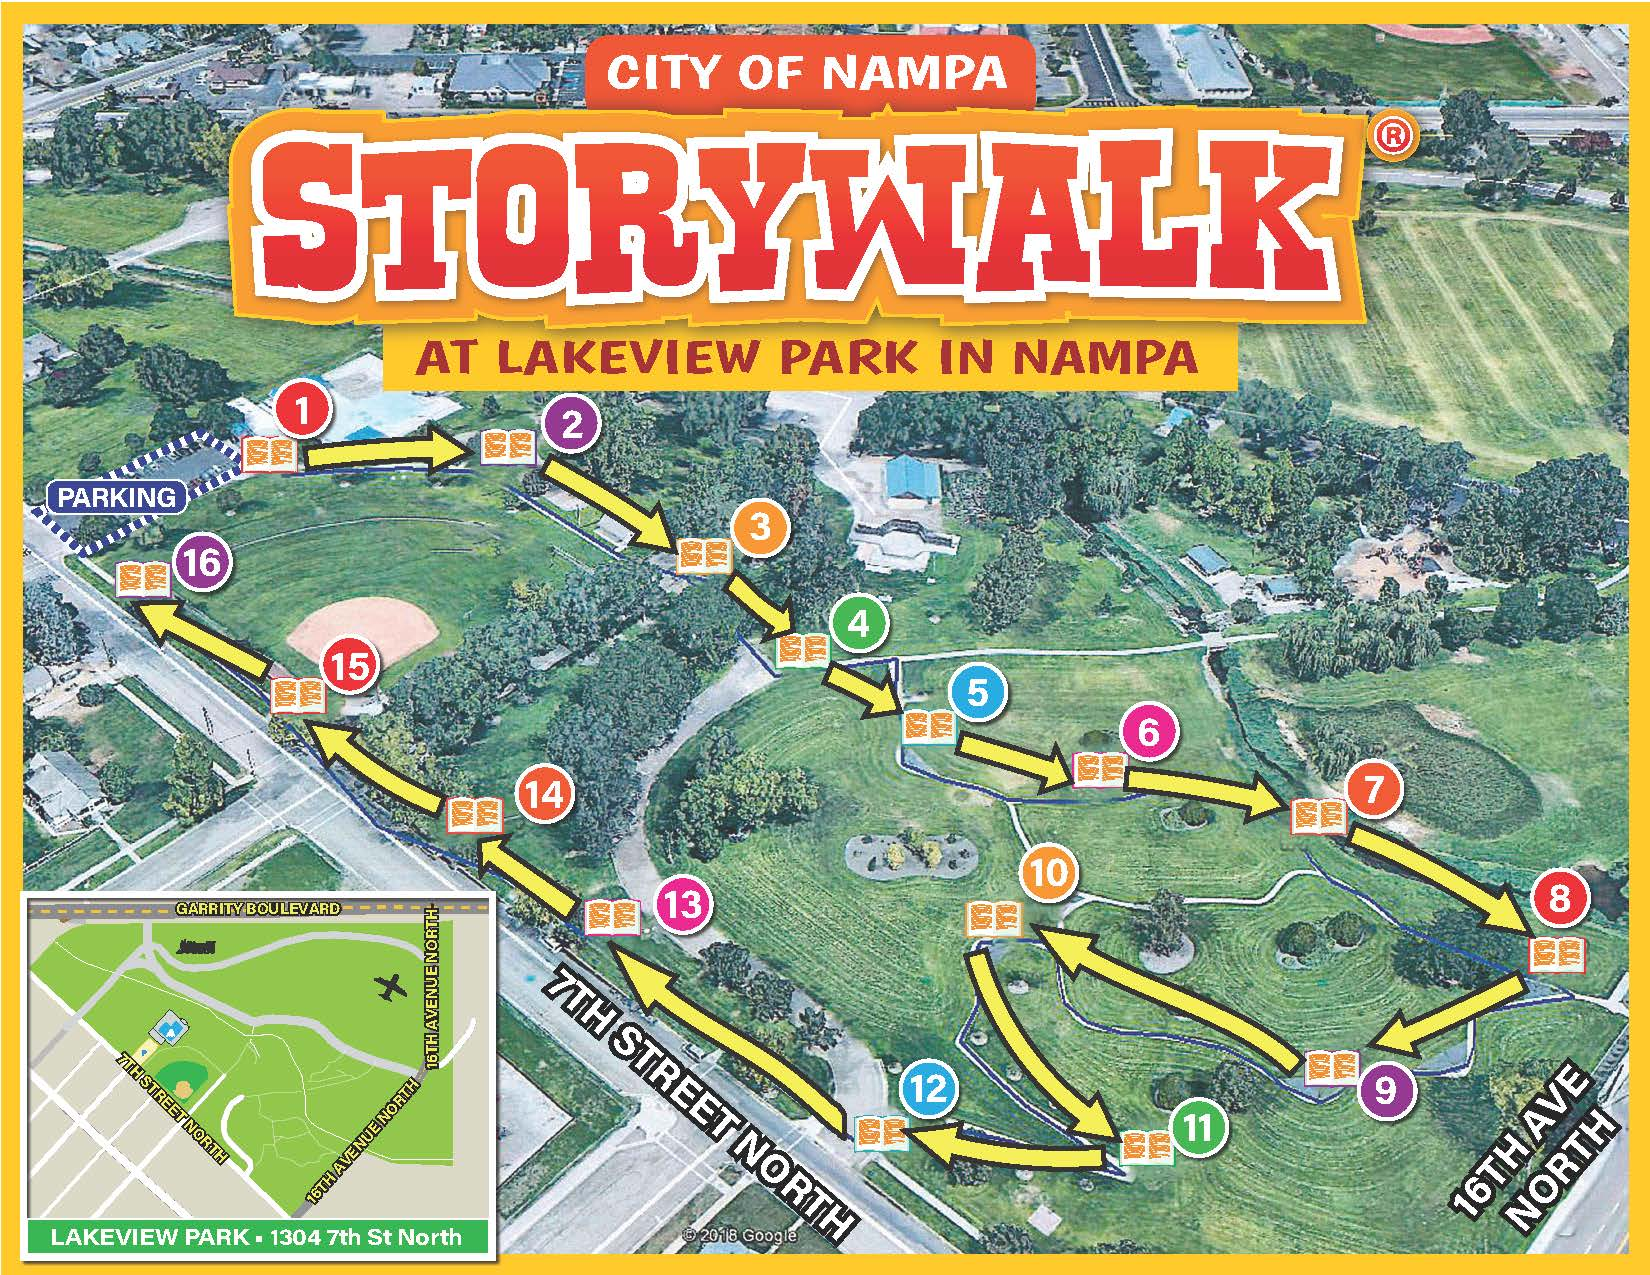 Story Trail MAP Opens in new window